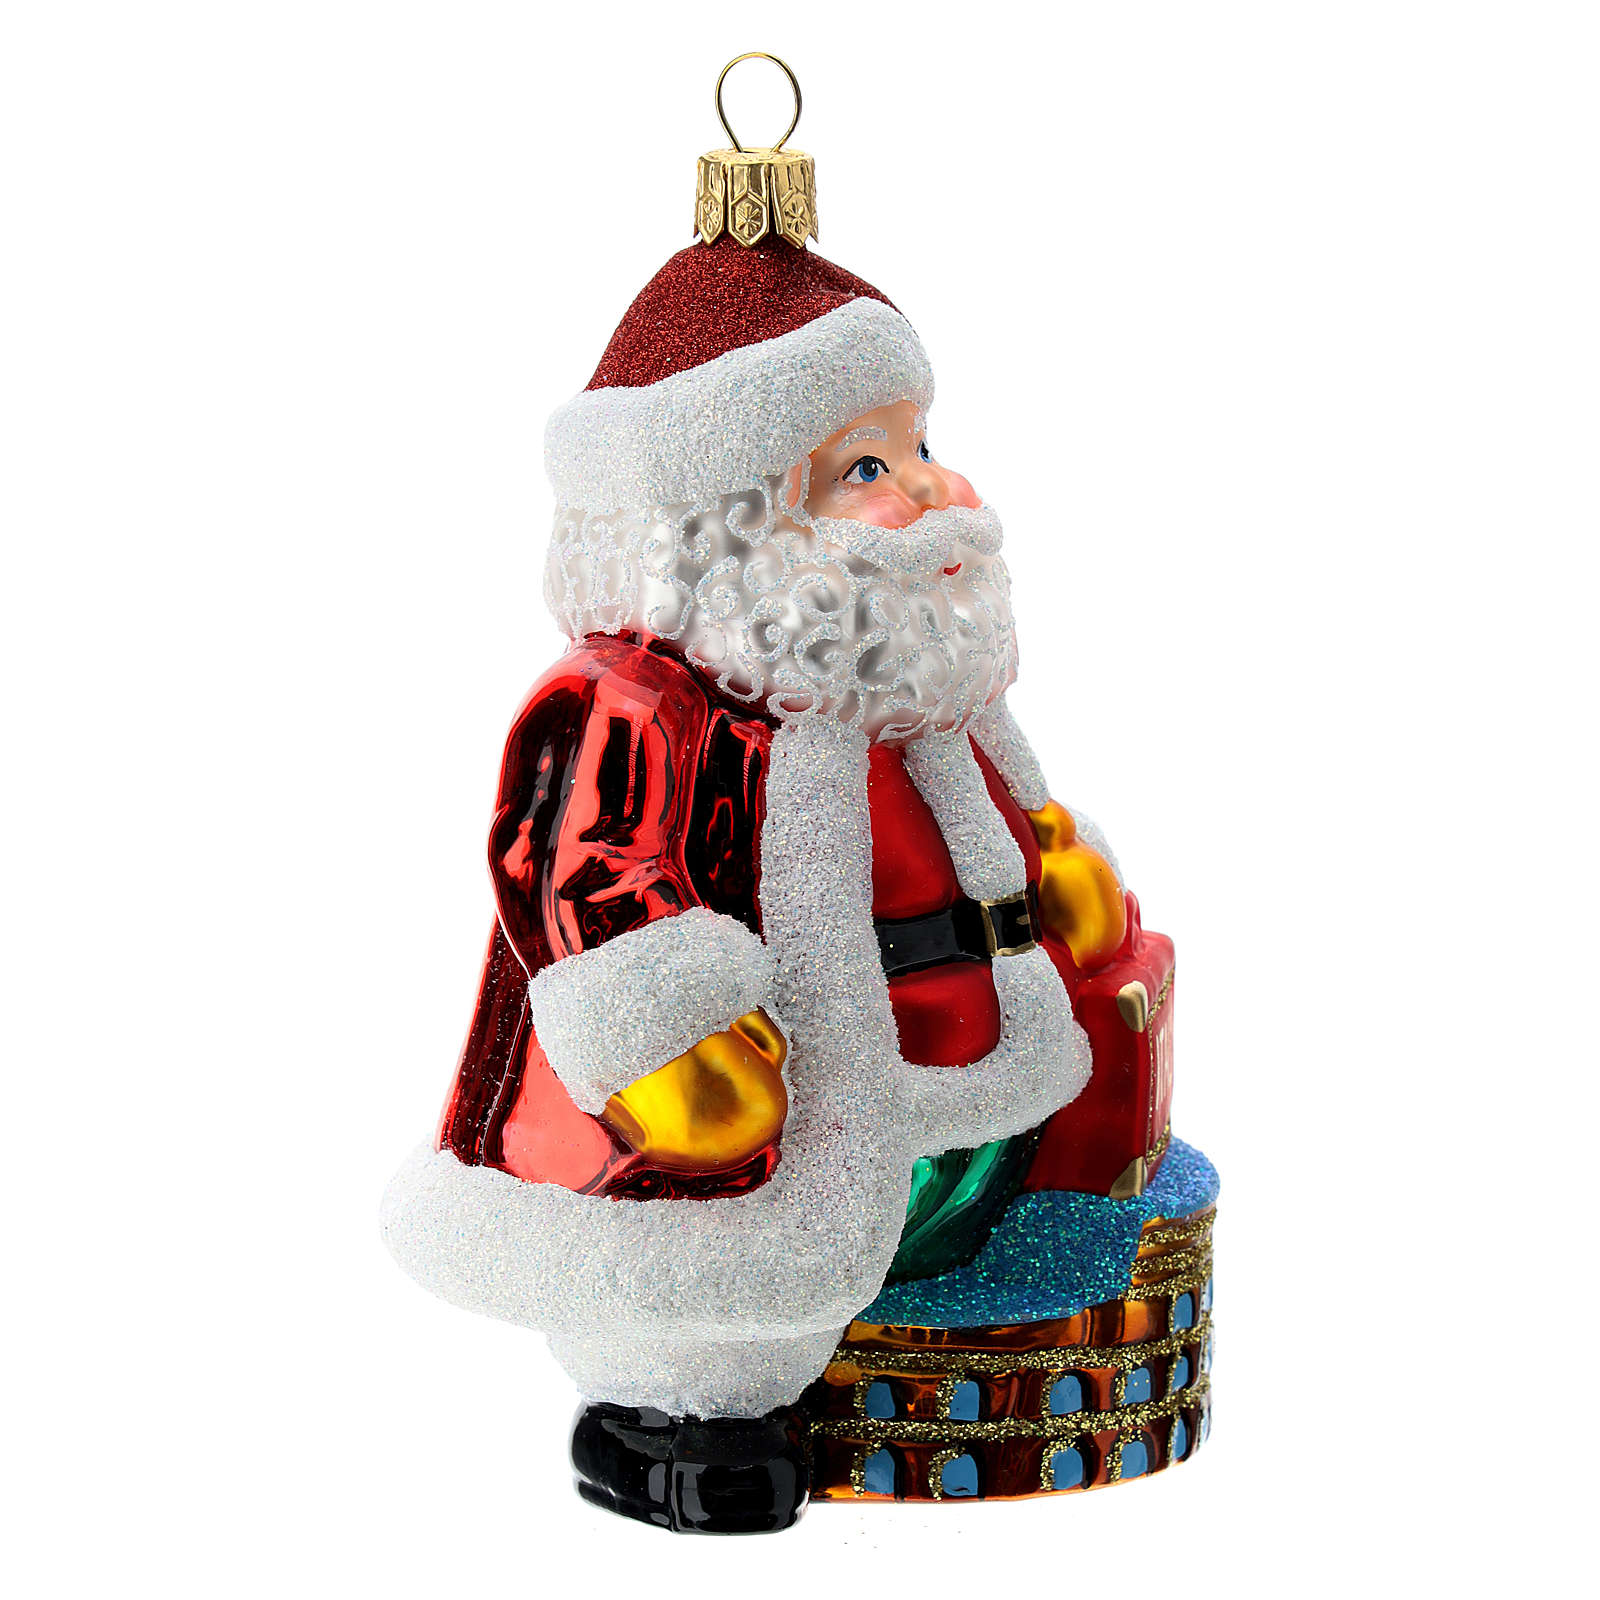 Blown glass Christmas ornament, Santa Claus in Italy 4